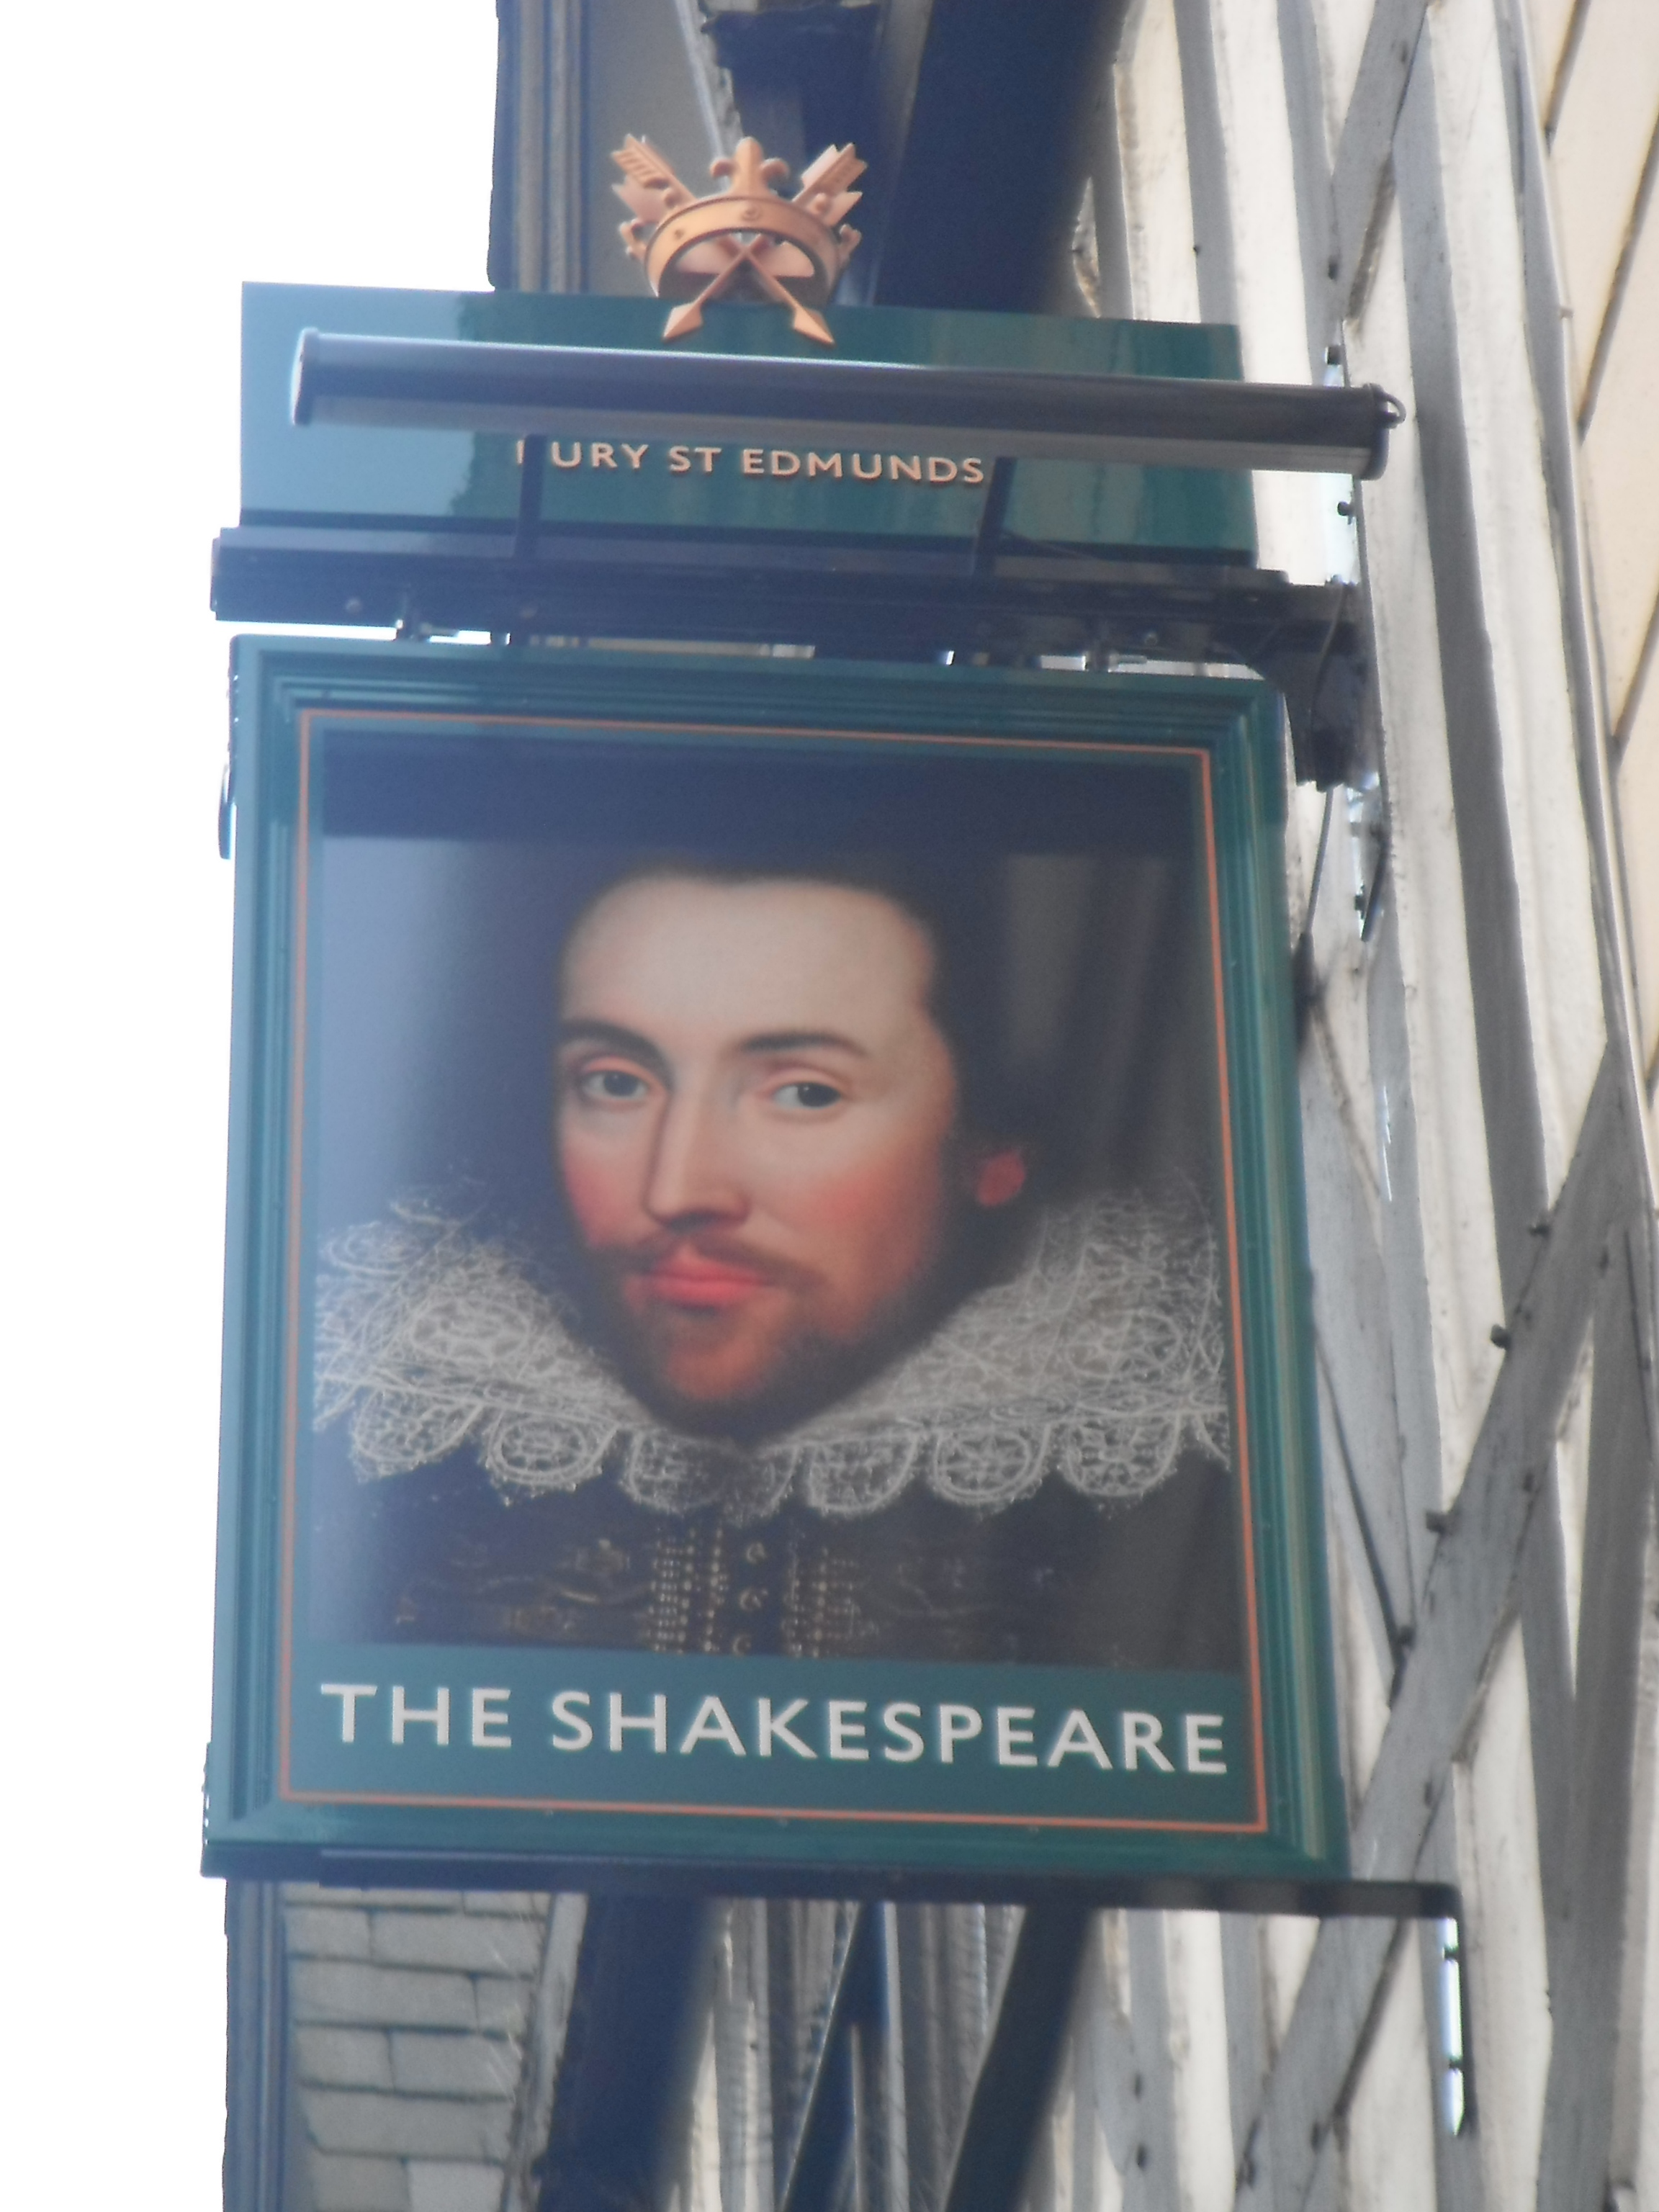 Photo taken by me – The Shakespeare pub sign, Manchester